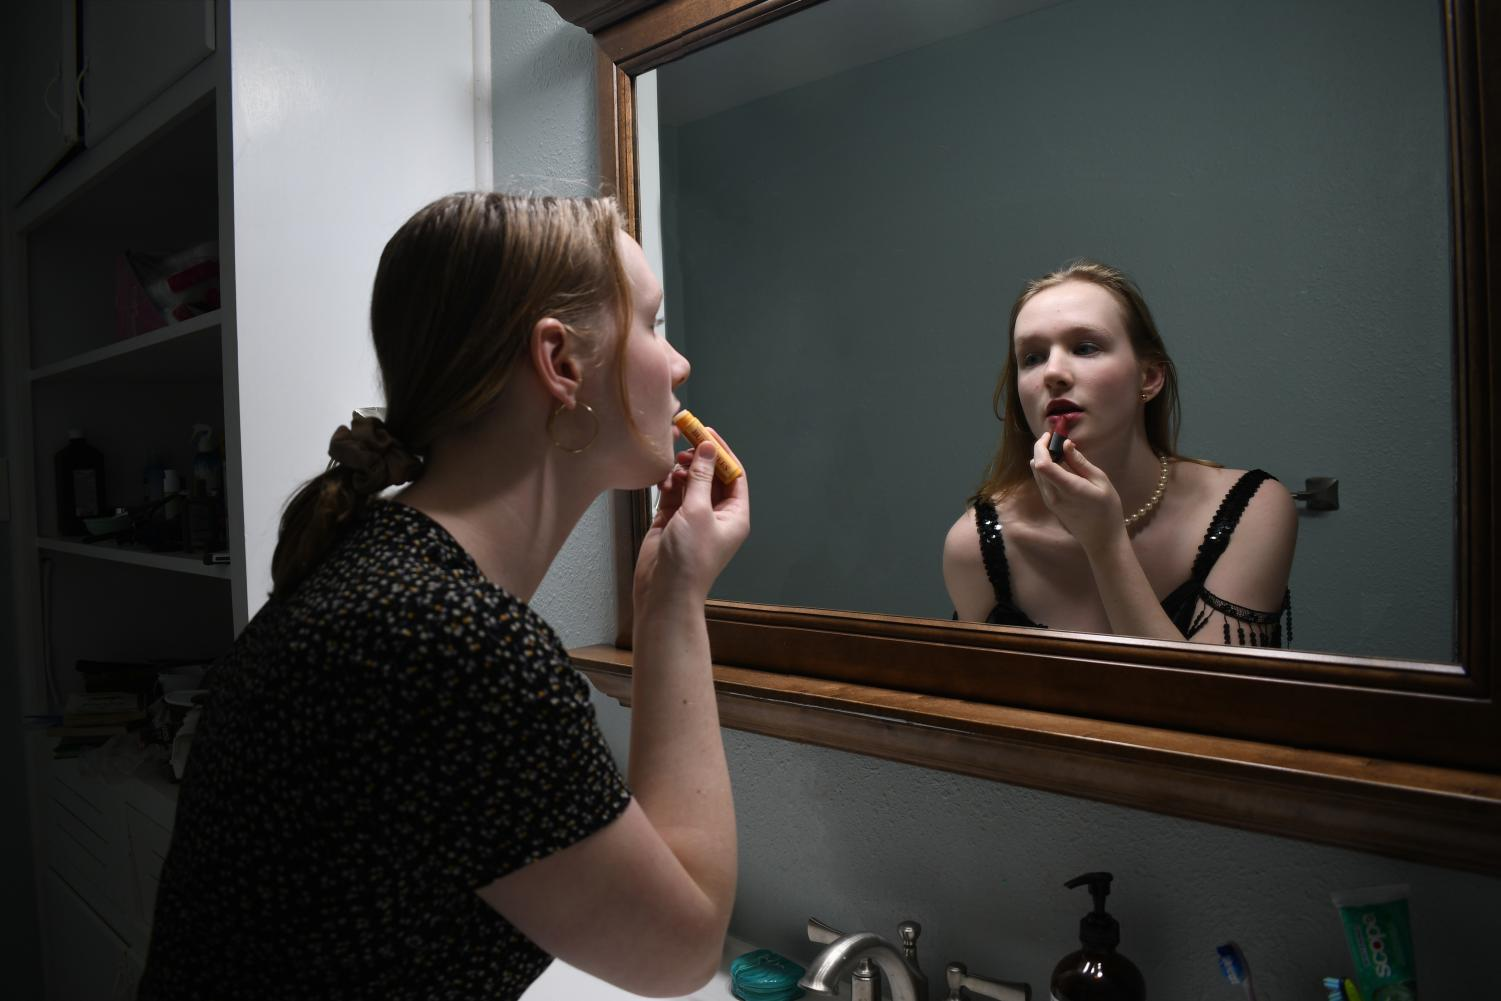 THROUGH THE LOOKING GLASS: Junior Ellen Fox looks upon on a Roaring 1920s reflection of herself in the mirror. The reflection flaunts the staples of  the time period: a flapper dress, a pearl necklace, and red lipstick. In the modern 2020's version, she wears modern equivalents; a Madewell dress, hoops, a scrunchie and Chapstick. Original photos and digital illustration by Ellen Fox.